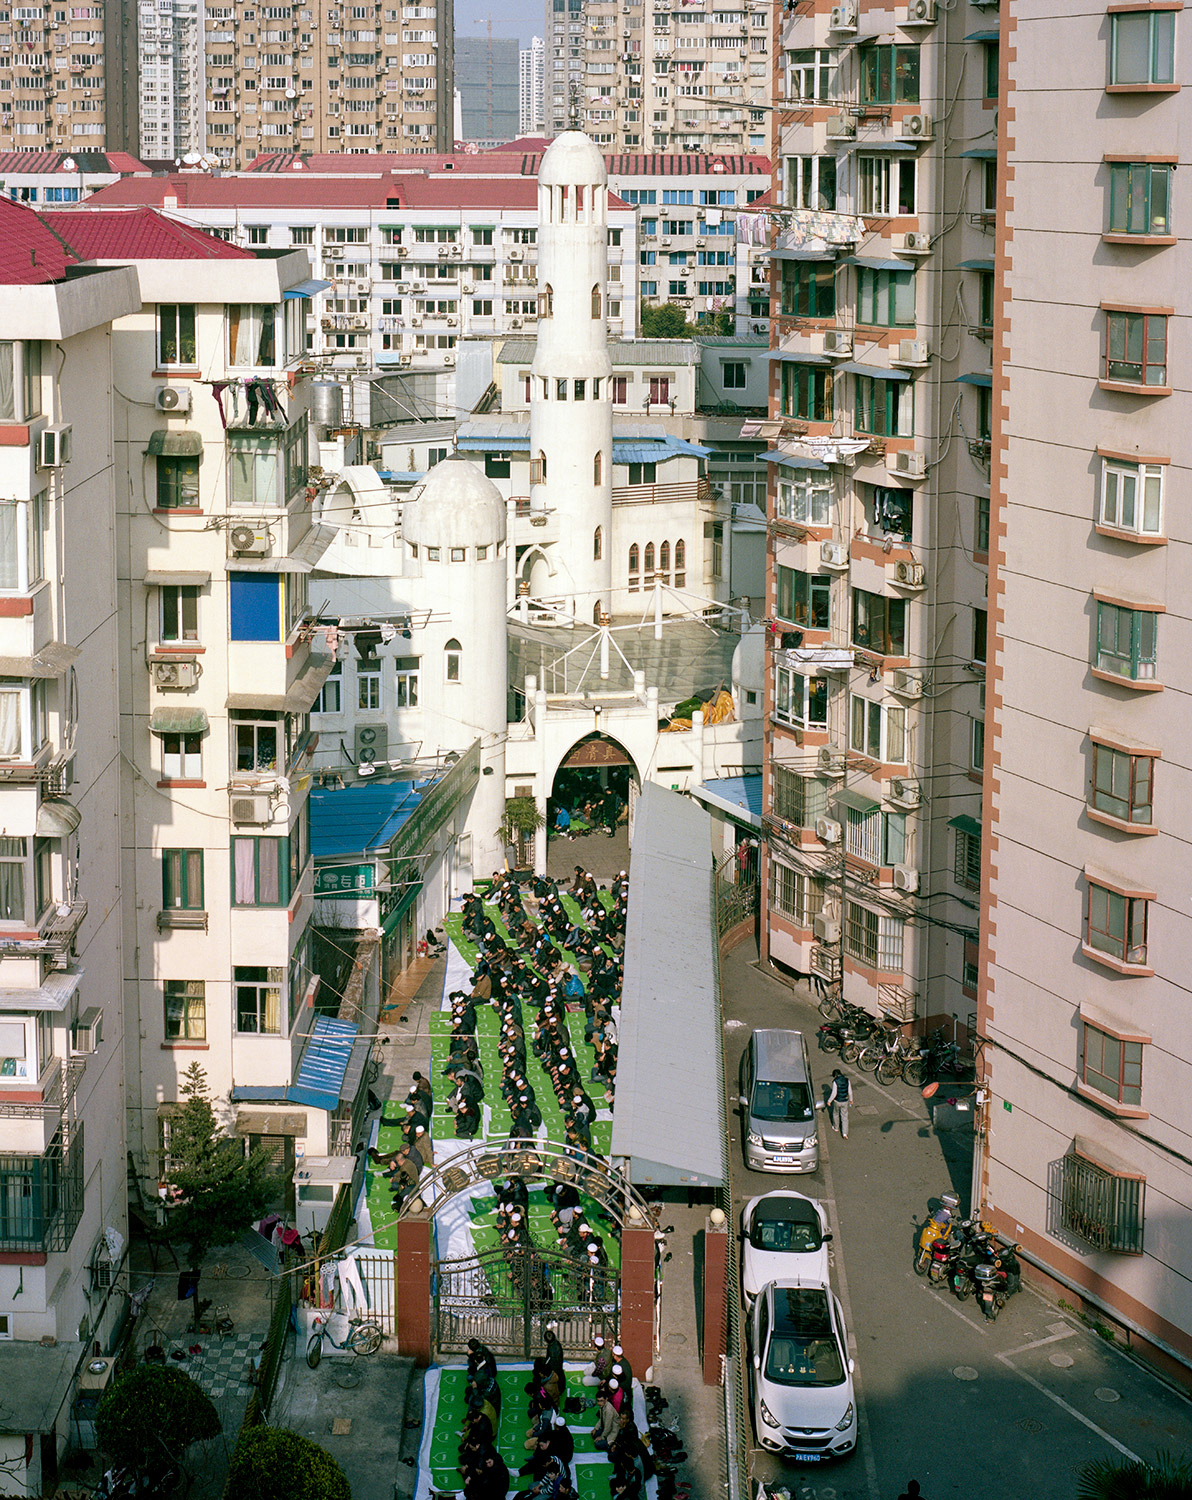 The Shanghai Mosque is located in a residential area surrounded by high rise housing projects making it almost impossible to see it from the street. The place itself is too small to welcome the thousands who come to the friday prayers.